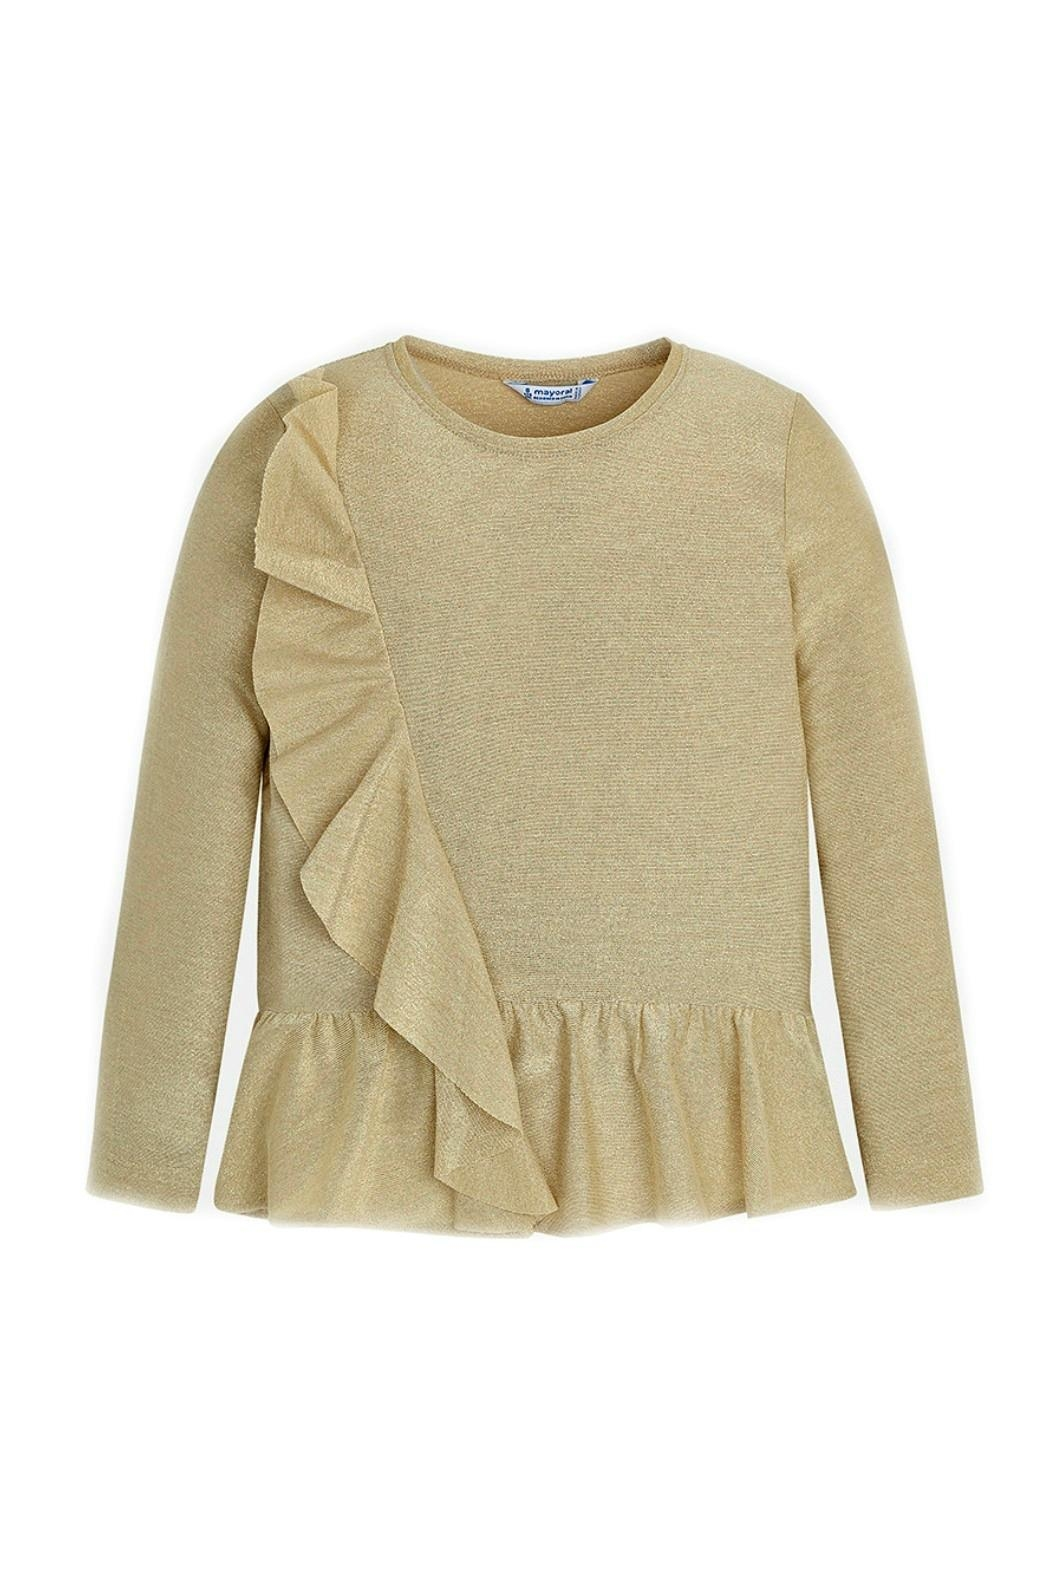 Mayoral Girls-Cascading-Ruffle-Metallic-Gold-Shimmer-Blouse - Front Cropped Image